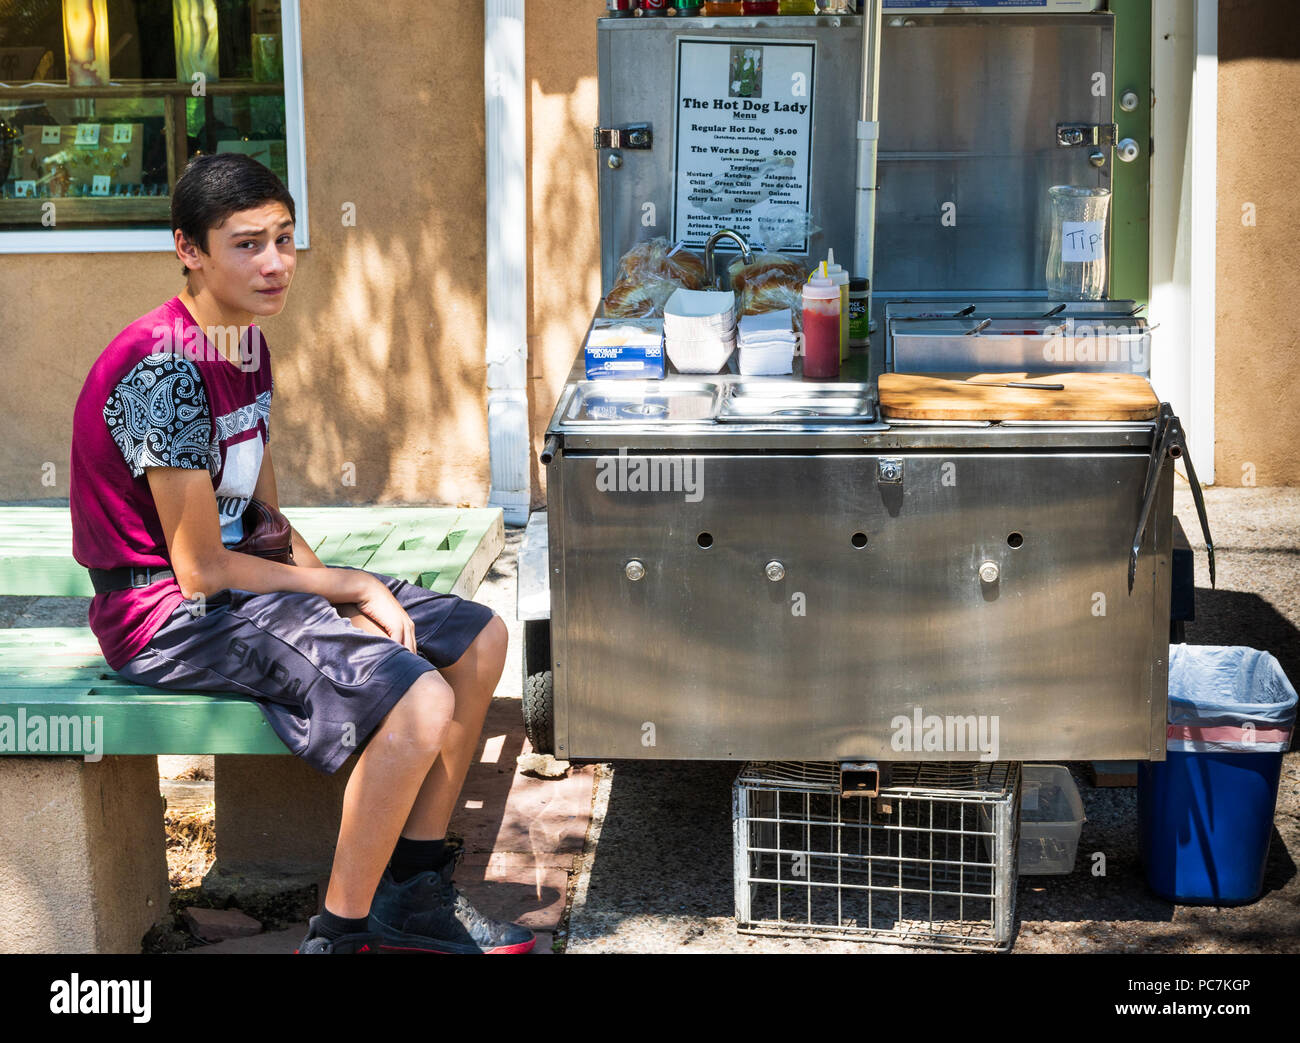 TAOS, NM, USA-8 JULY 18: A forlorn-looking teenaged boy, sitting beside his hot dog stand on Bent St. in Taos,  waiting for customers to appear. - Stock Image